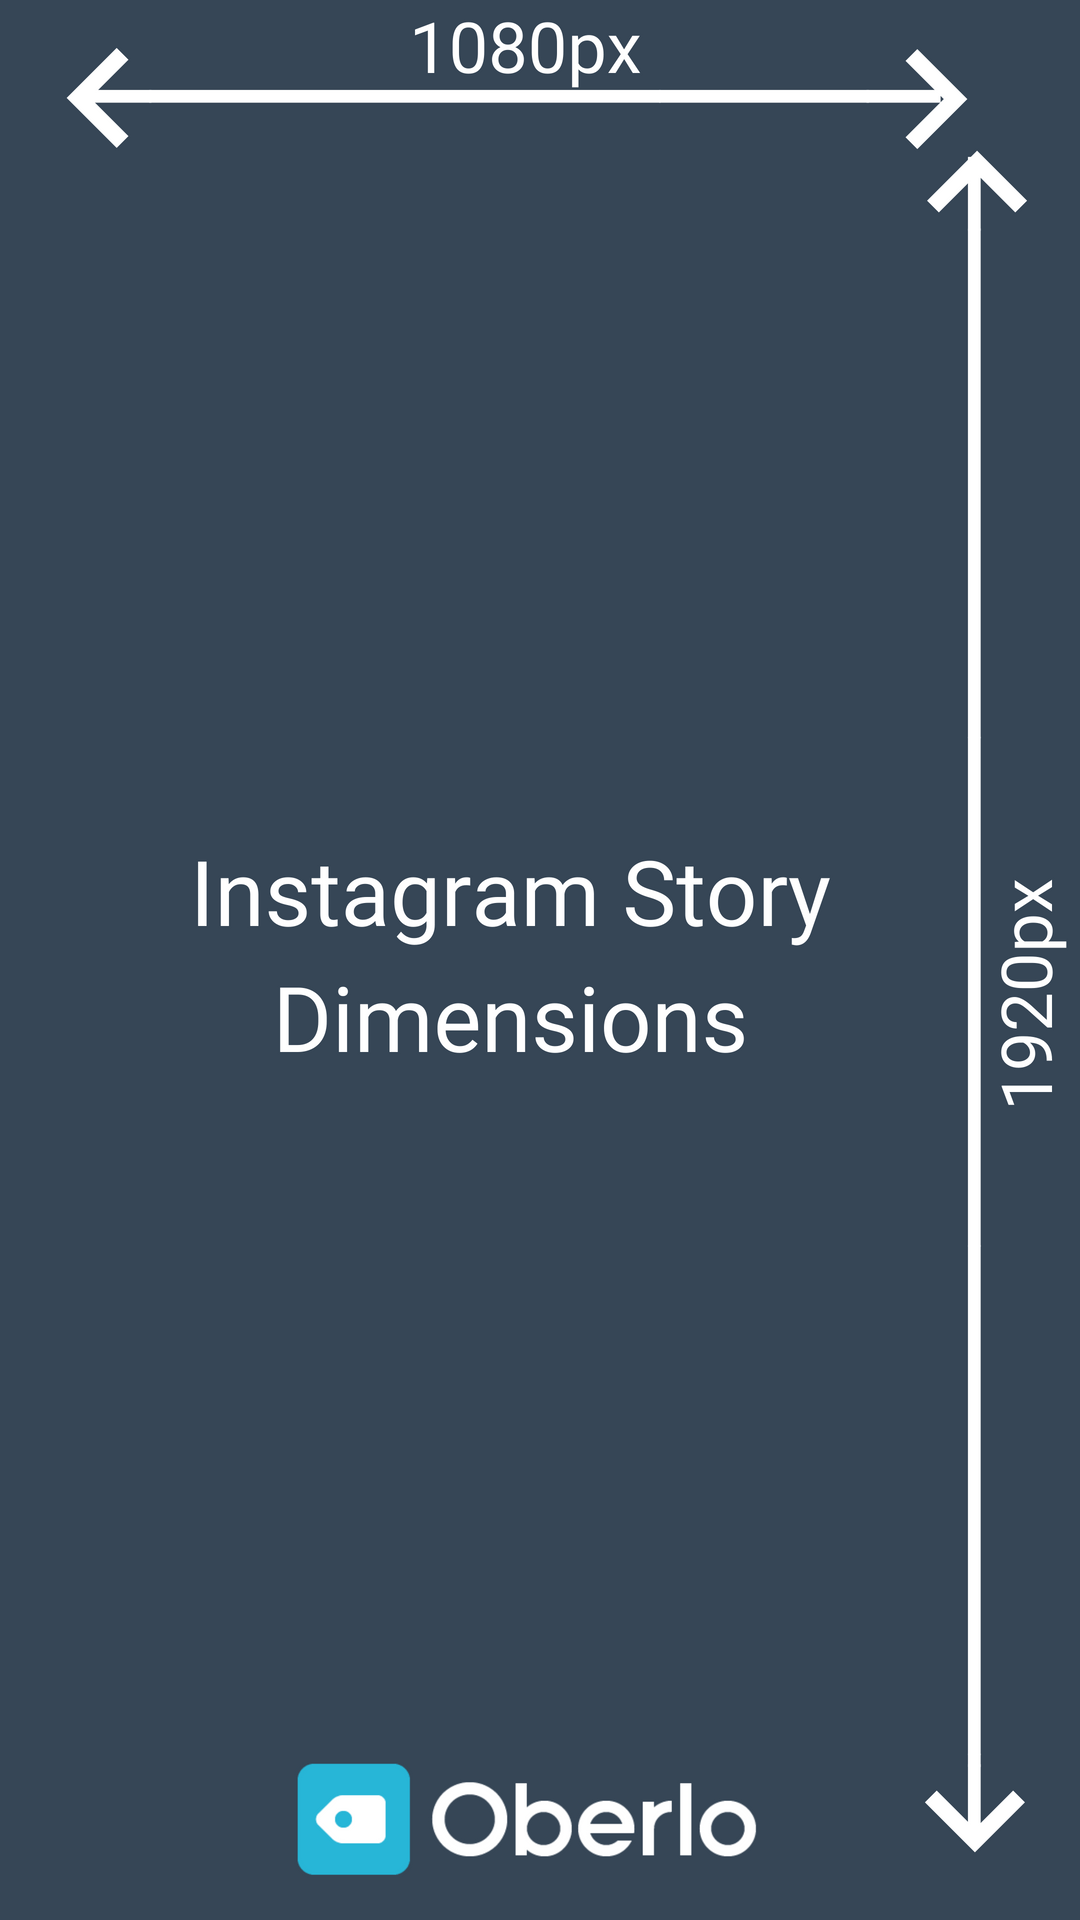 Instagram Stories Dimensions